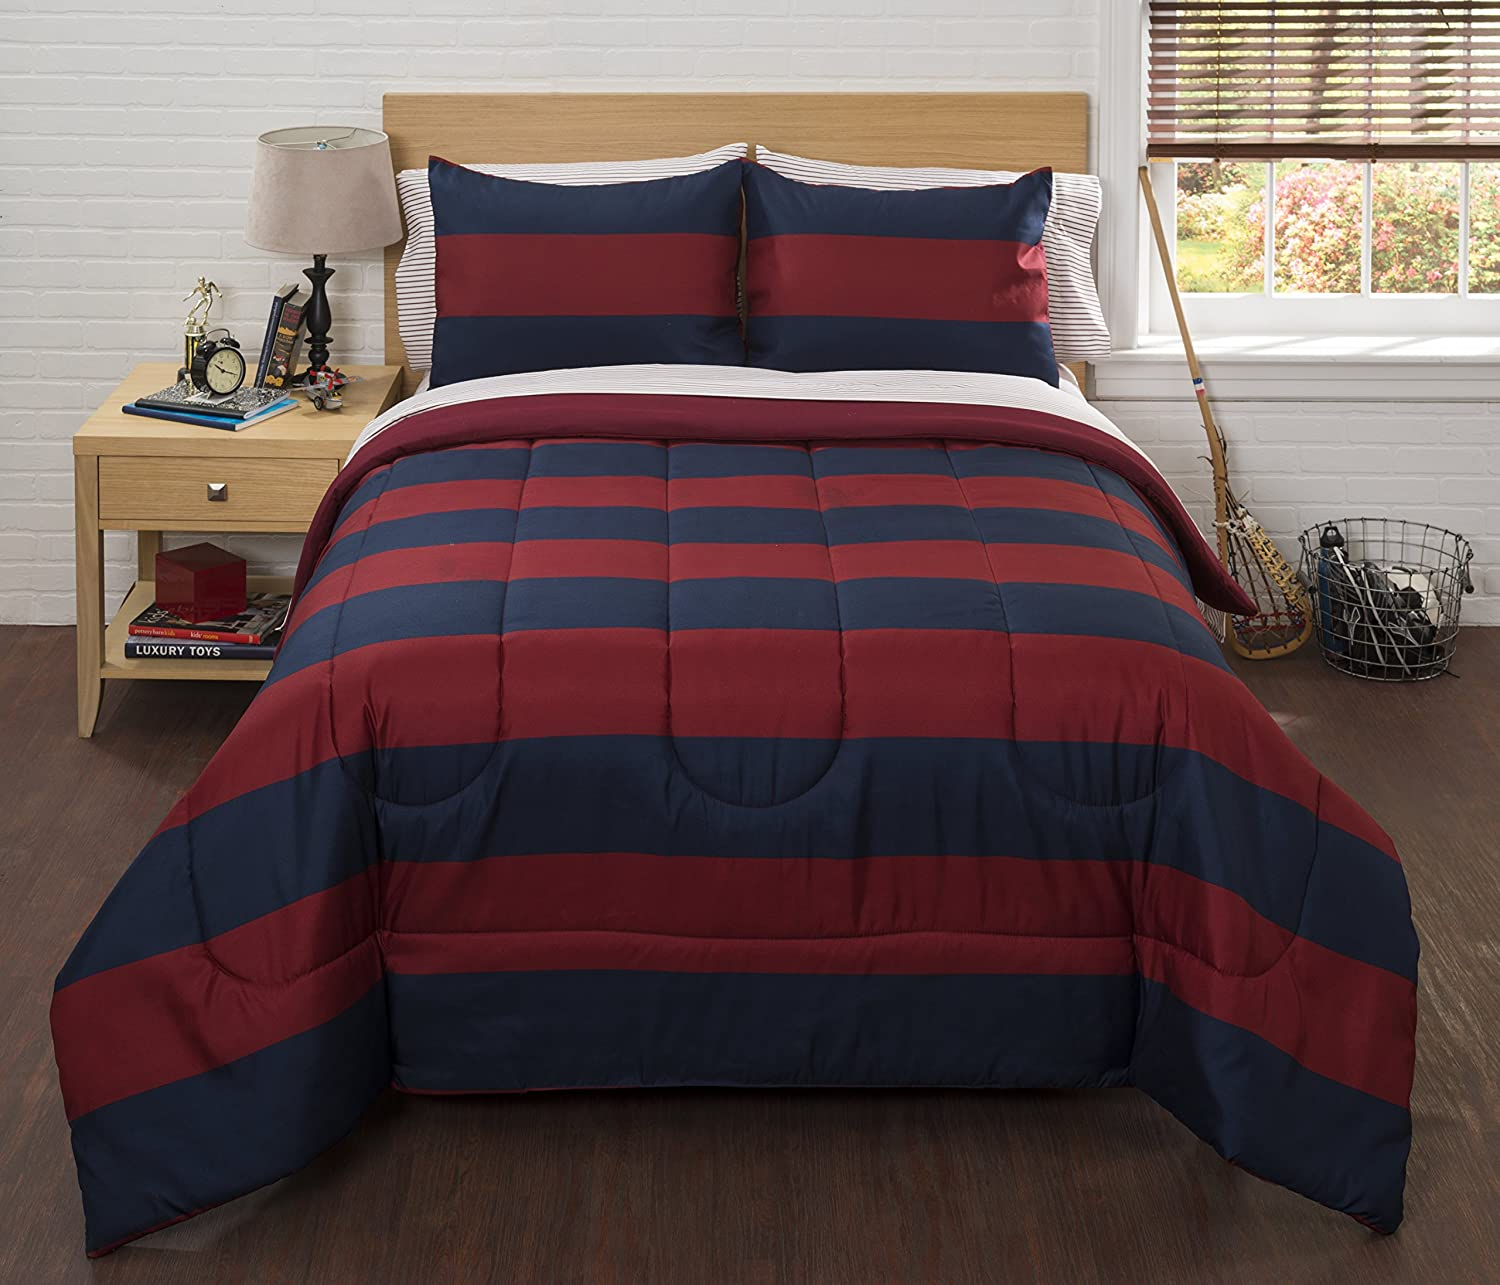 Home Classic 7 Pcs Bed Comforter Set Multi Color Rugby Stripe New